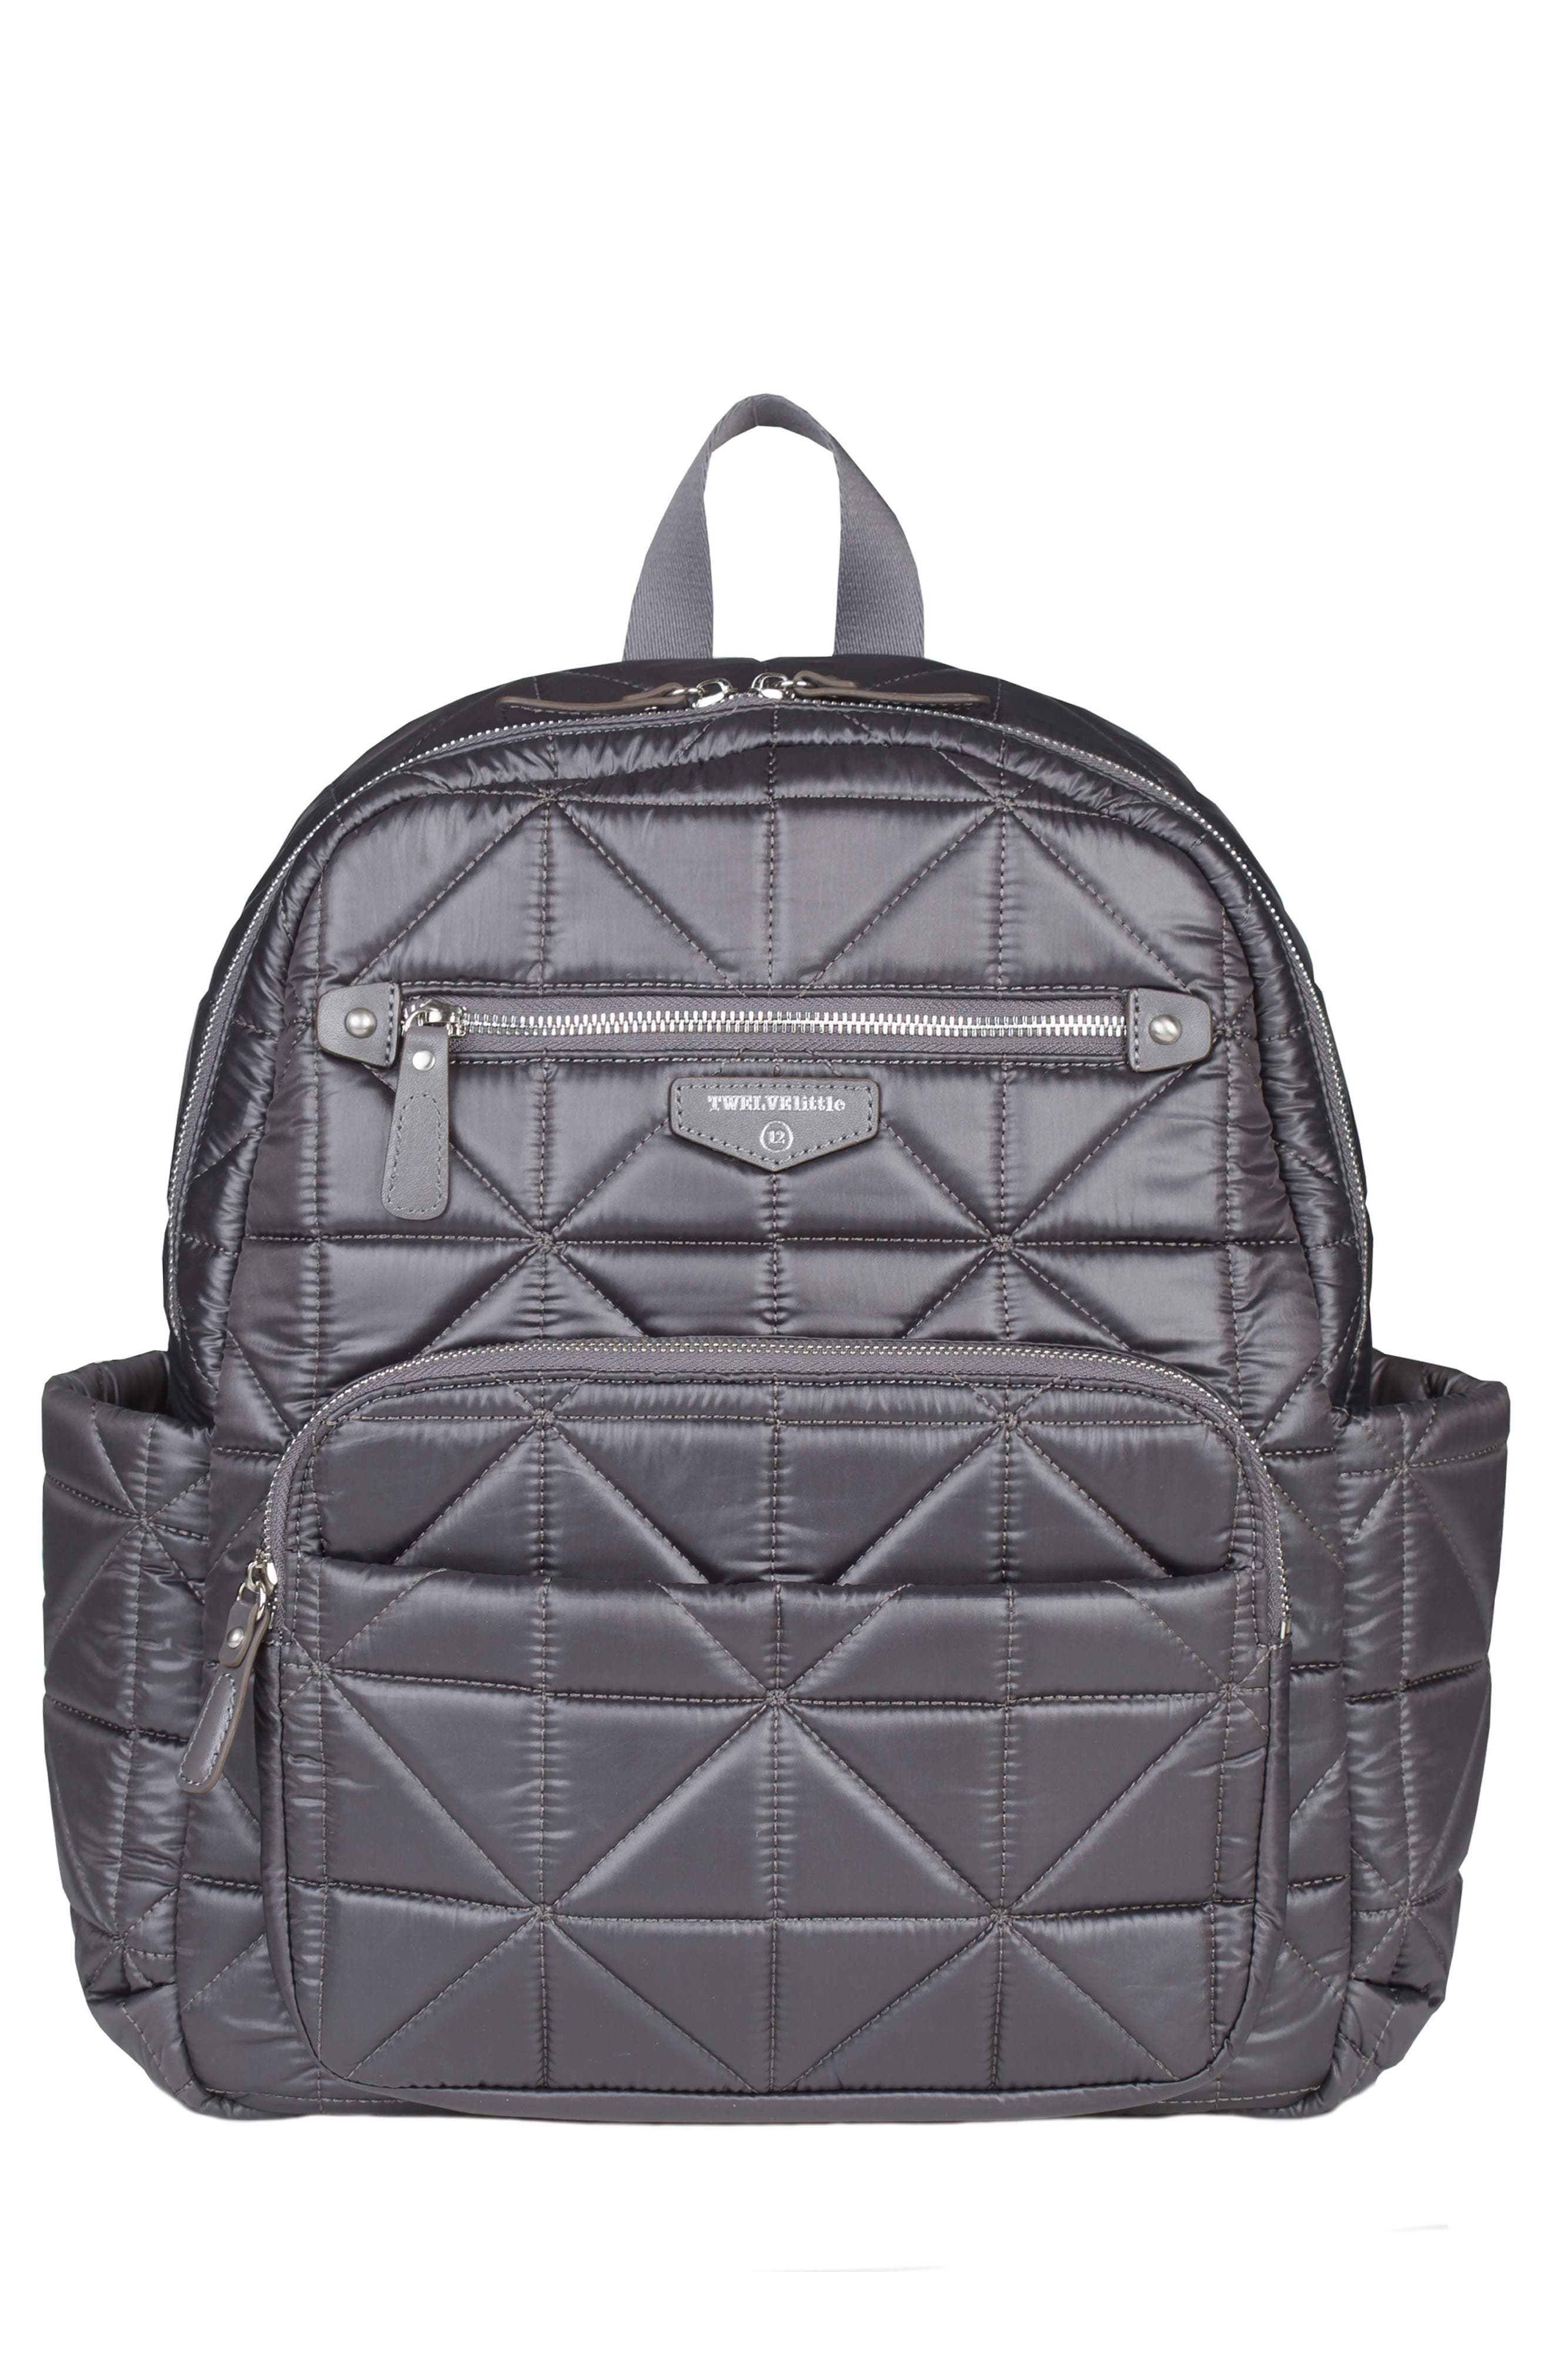 Companion Quilted Nylon Diaper Backpack,                             Main thumbnail 1, color,                             PLATINUM